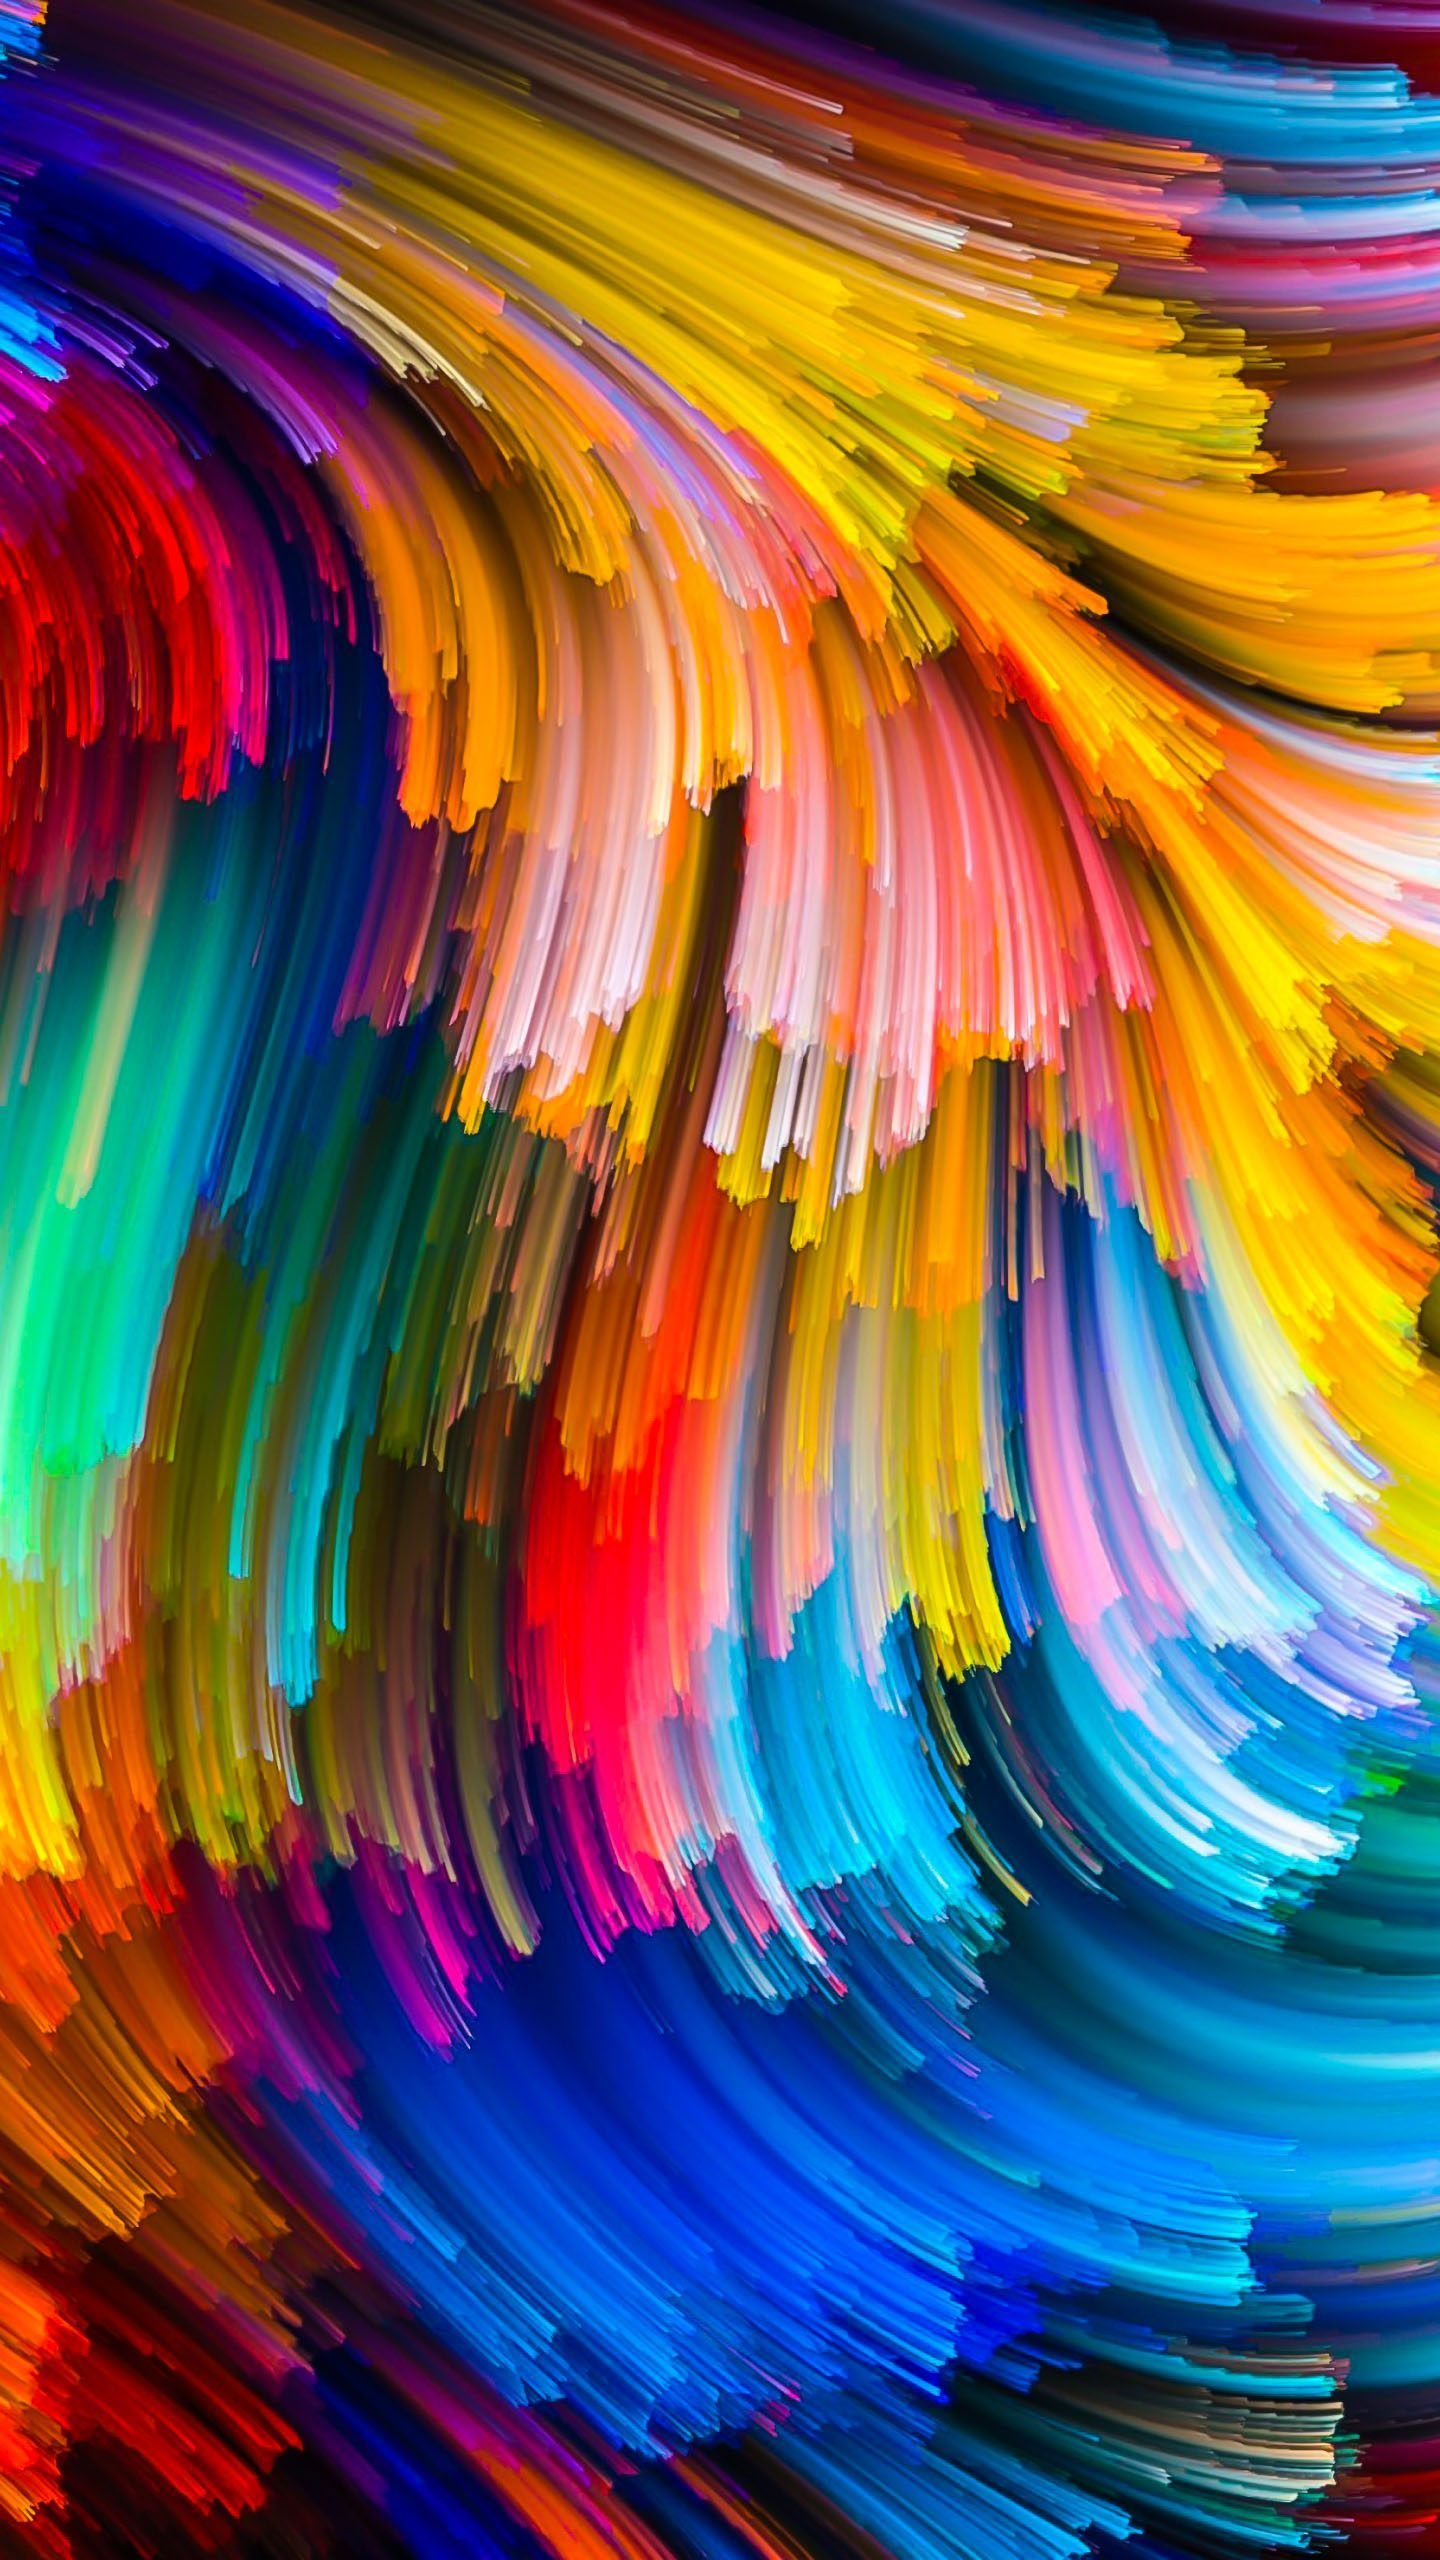 Colorful Smartphone Wallpapers On Wallpaperdog